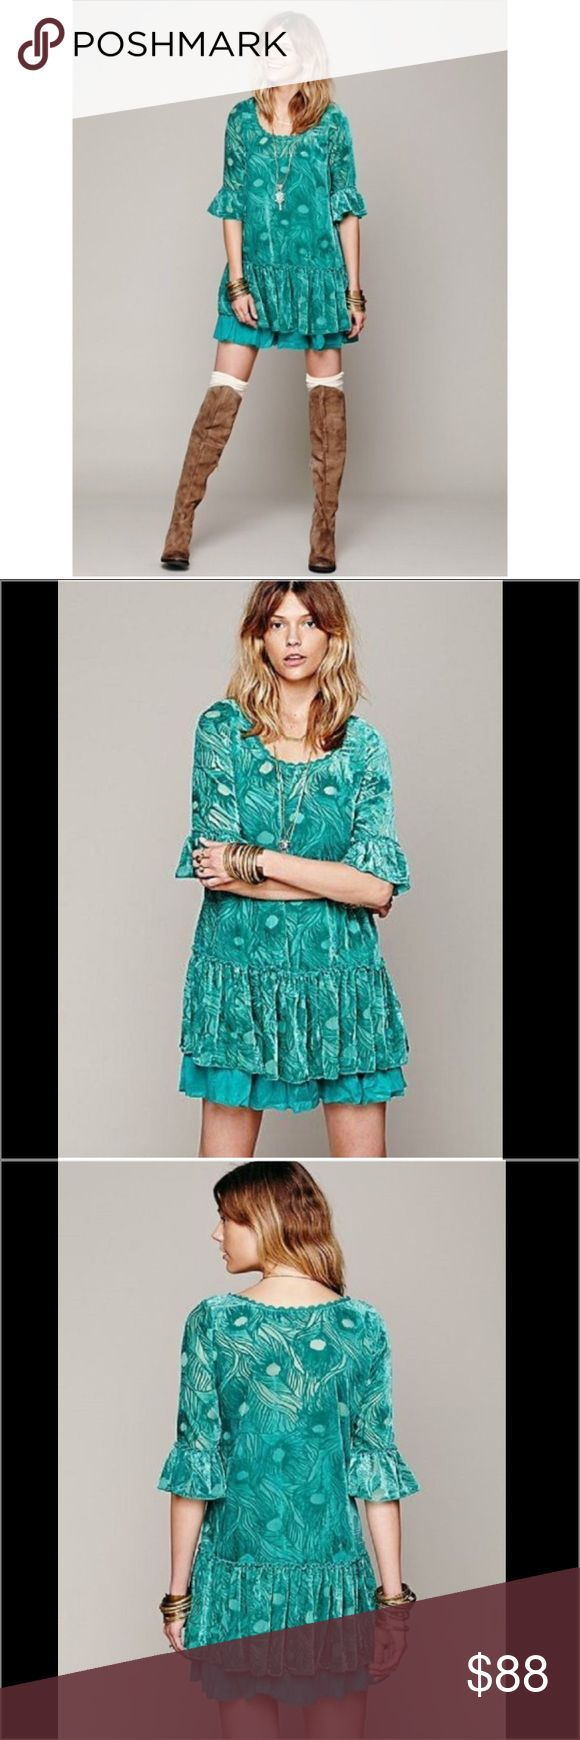 Free People Boho Festival Dress Free People Boho Festival Dress.  Gorgeous dress and in this green blue color!!  Match it with the adorable Kate Spade Crossbody  in my closet.   Fashionable dress with bell sleeves.  Textured velvet shift dress.  Scalloped Lace trim.  60% rayon, 40% nylon.  Missing slip. Free People Dresses Mini